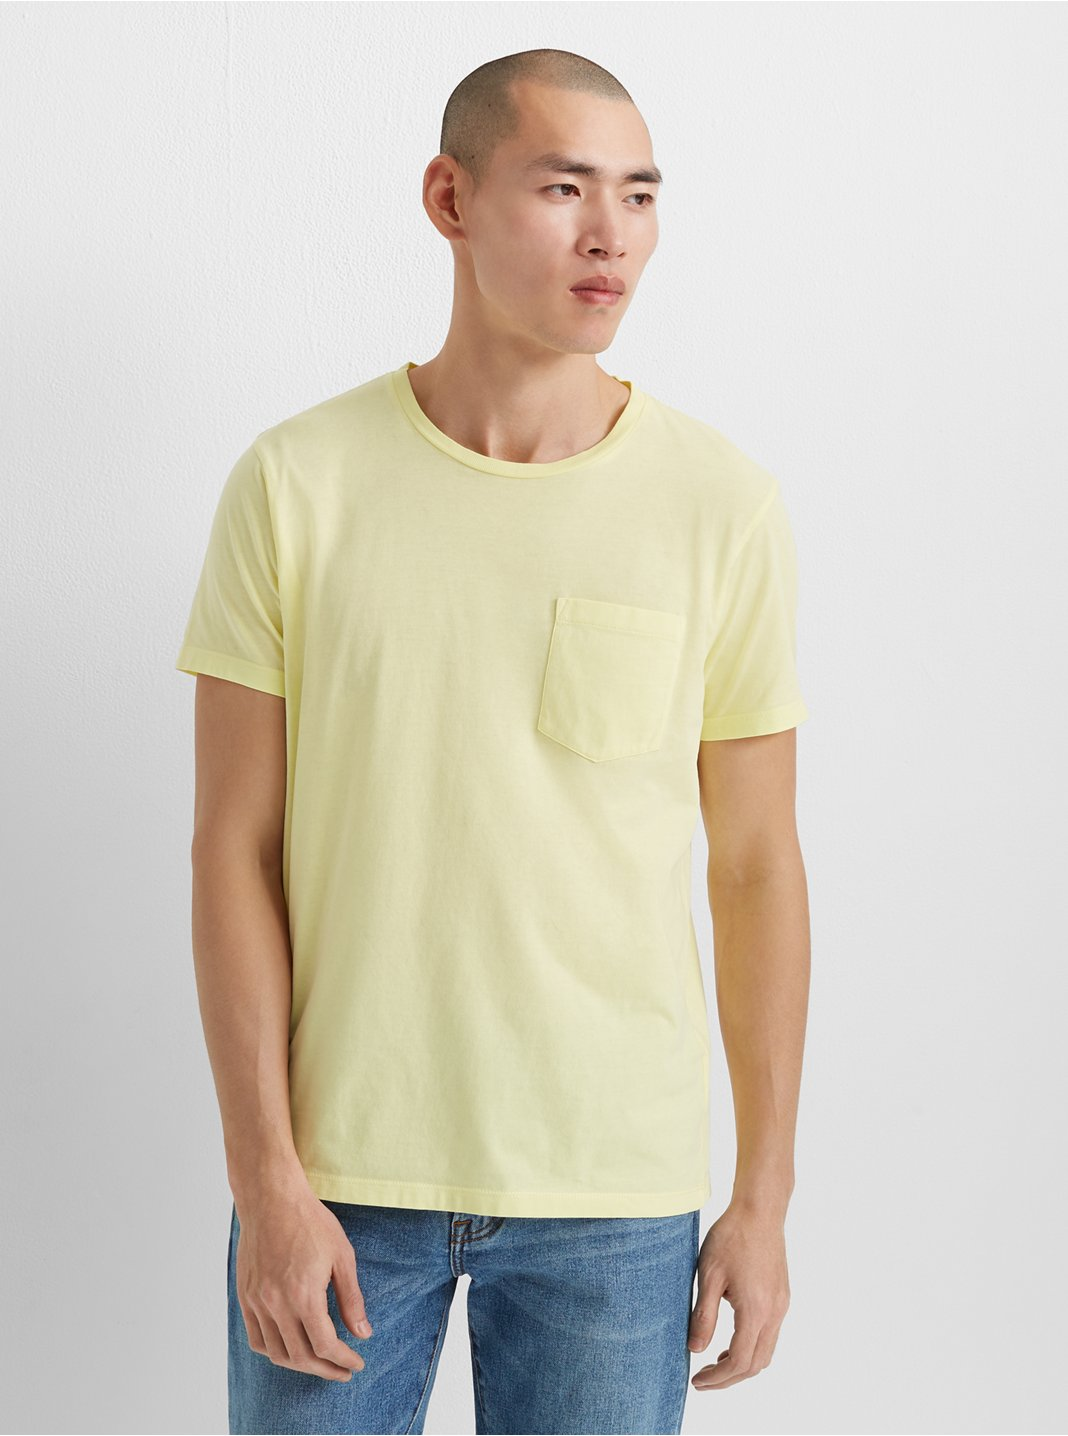 Williams Pocket Tee